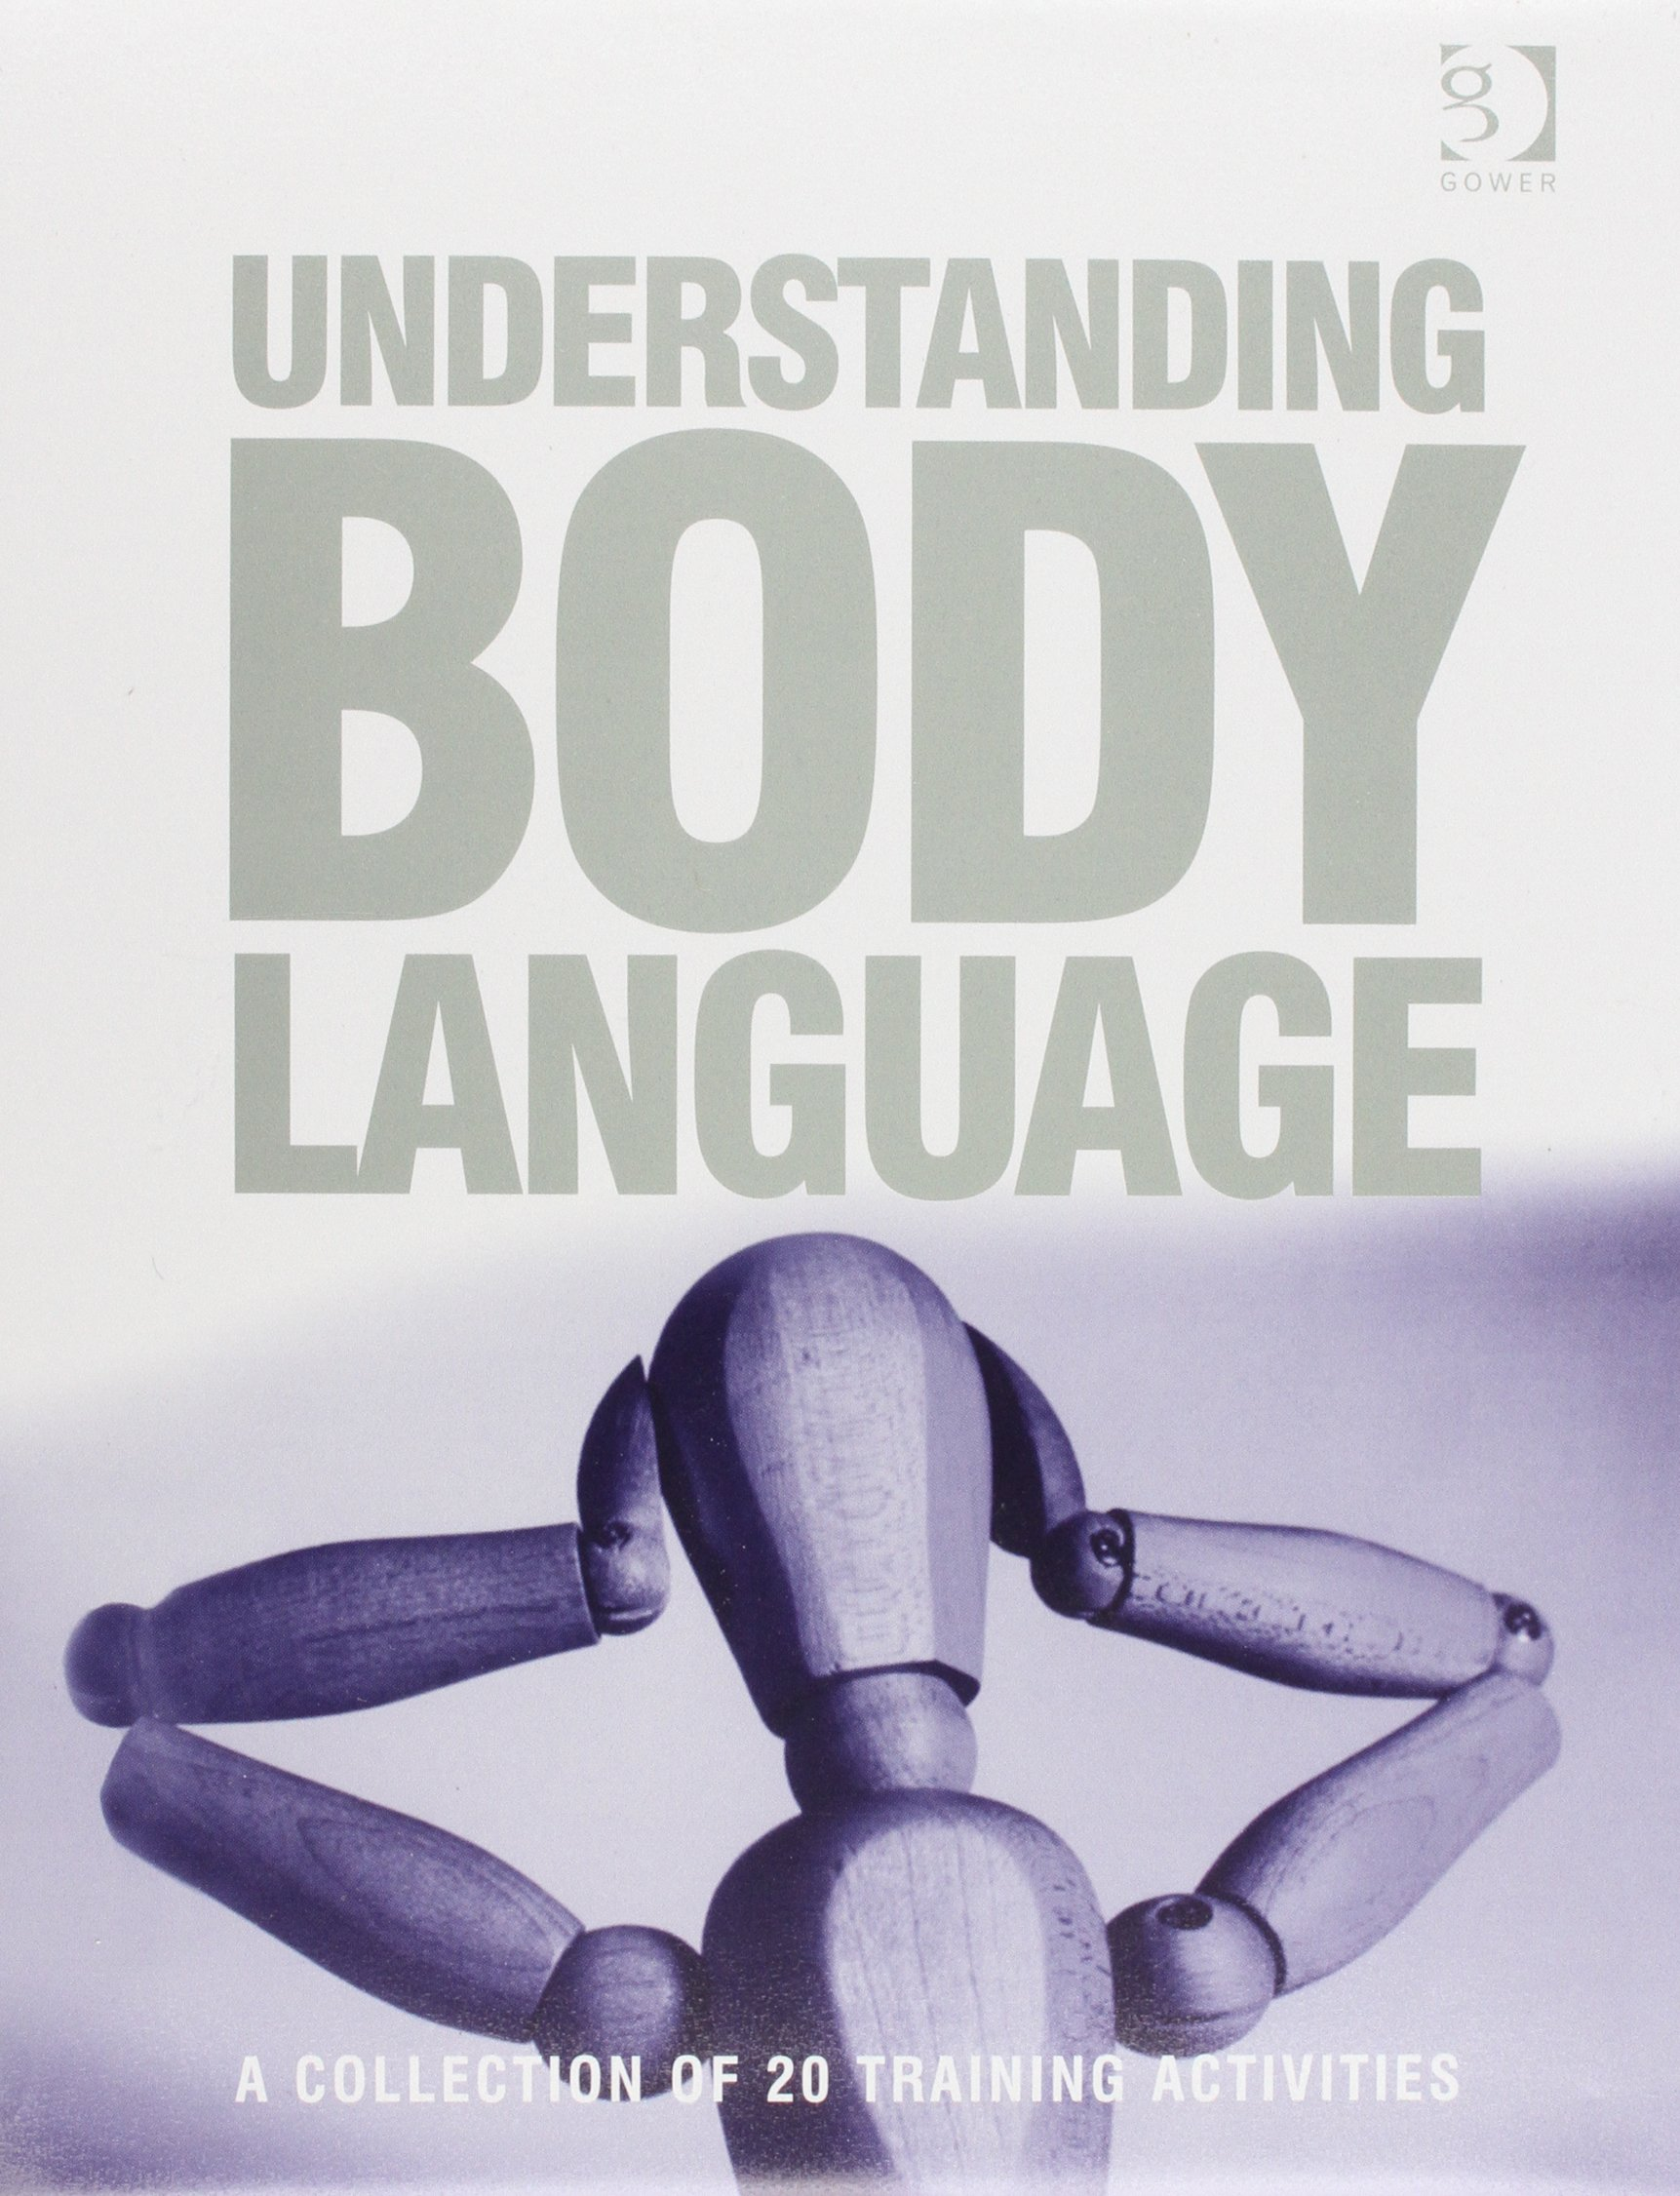 Understanding Body Language: A Collection of 20 Training Activities by Gower Pub Co